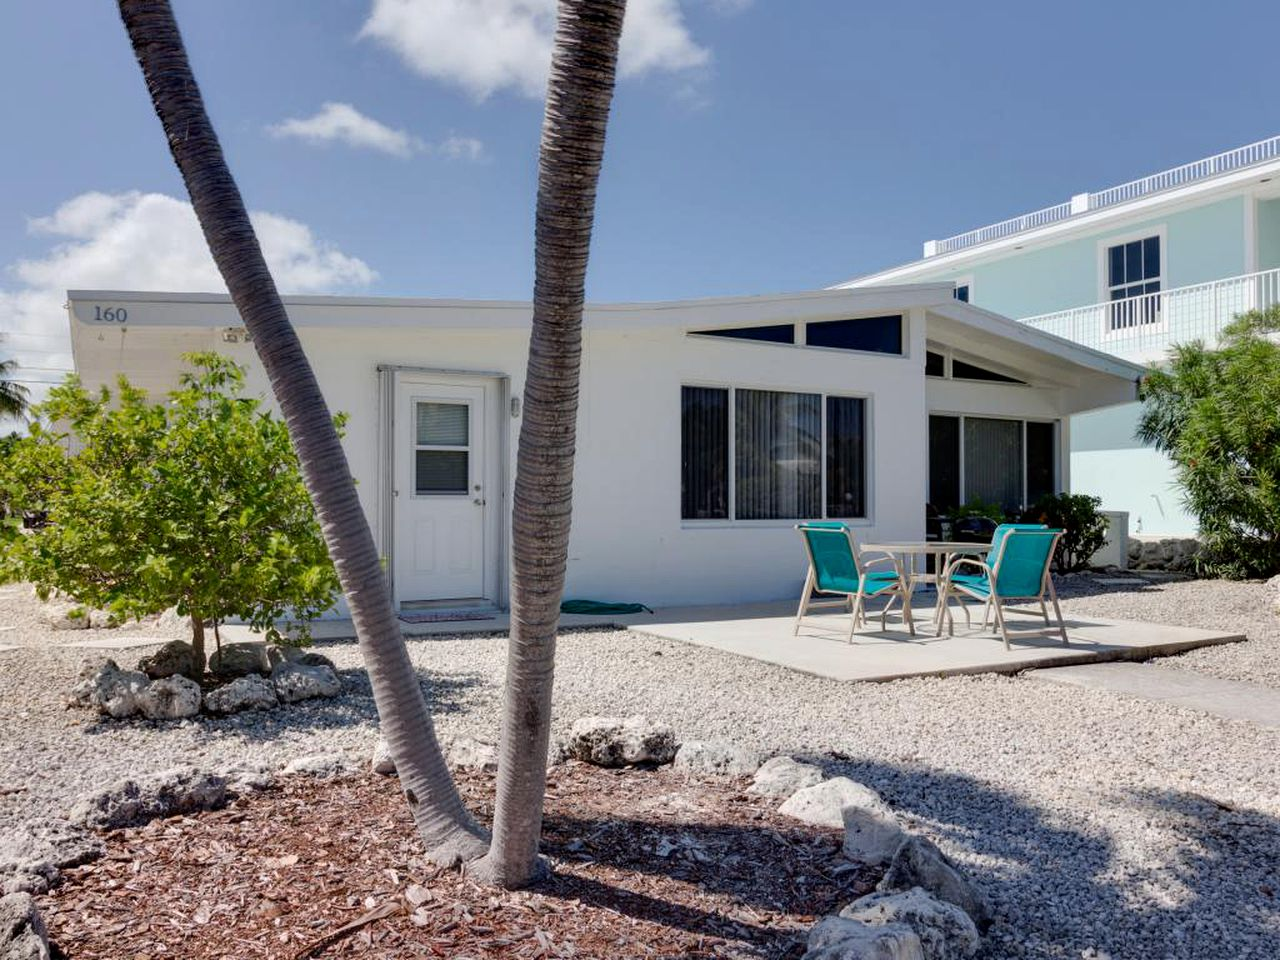 Cottages (Key Colony Beach, Florida, United States)